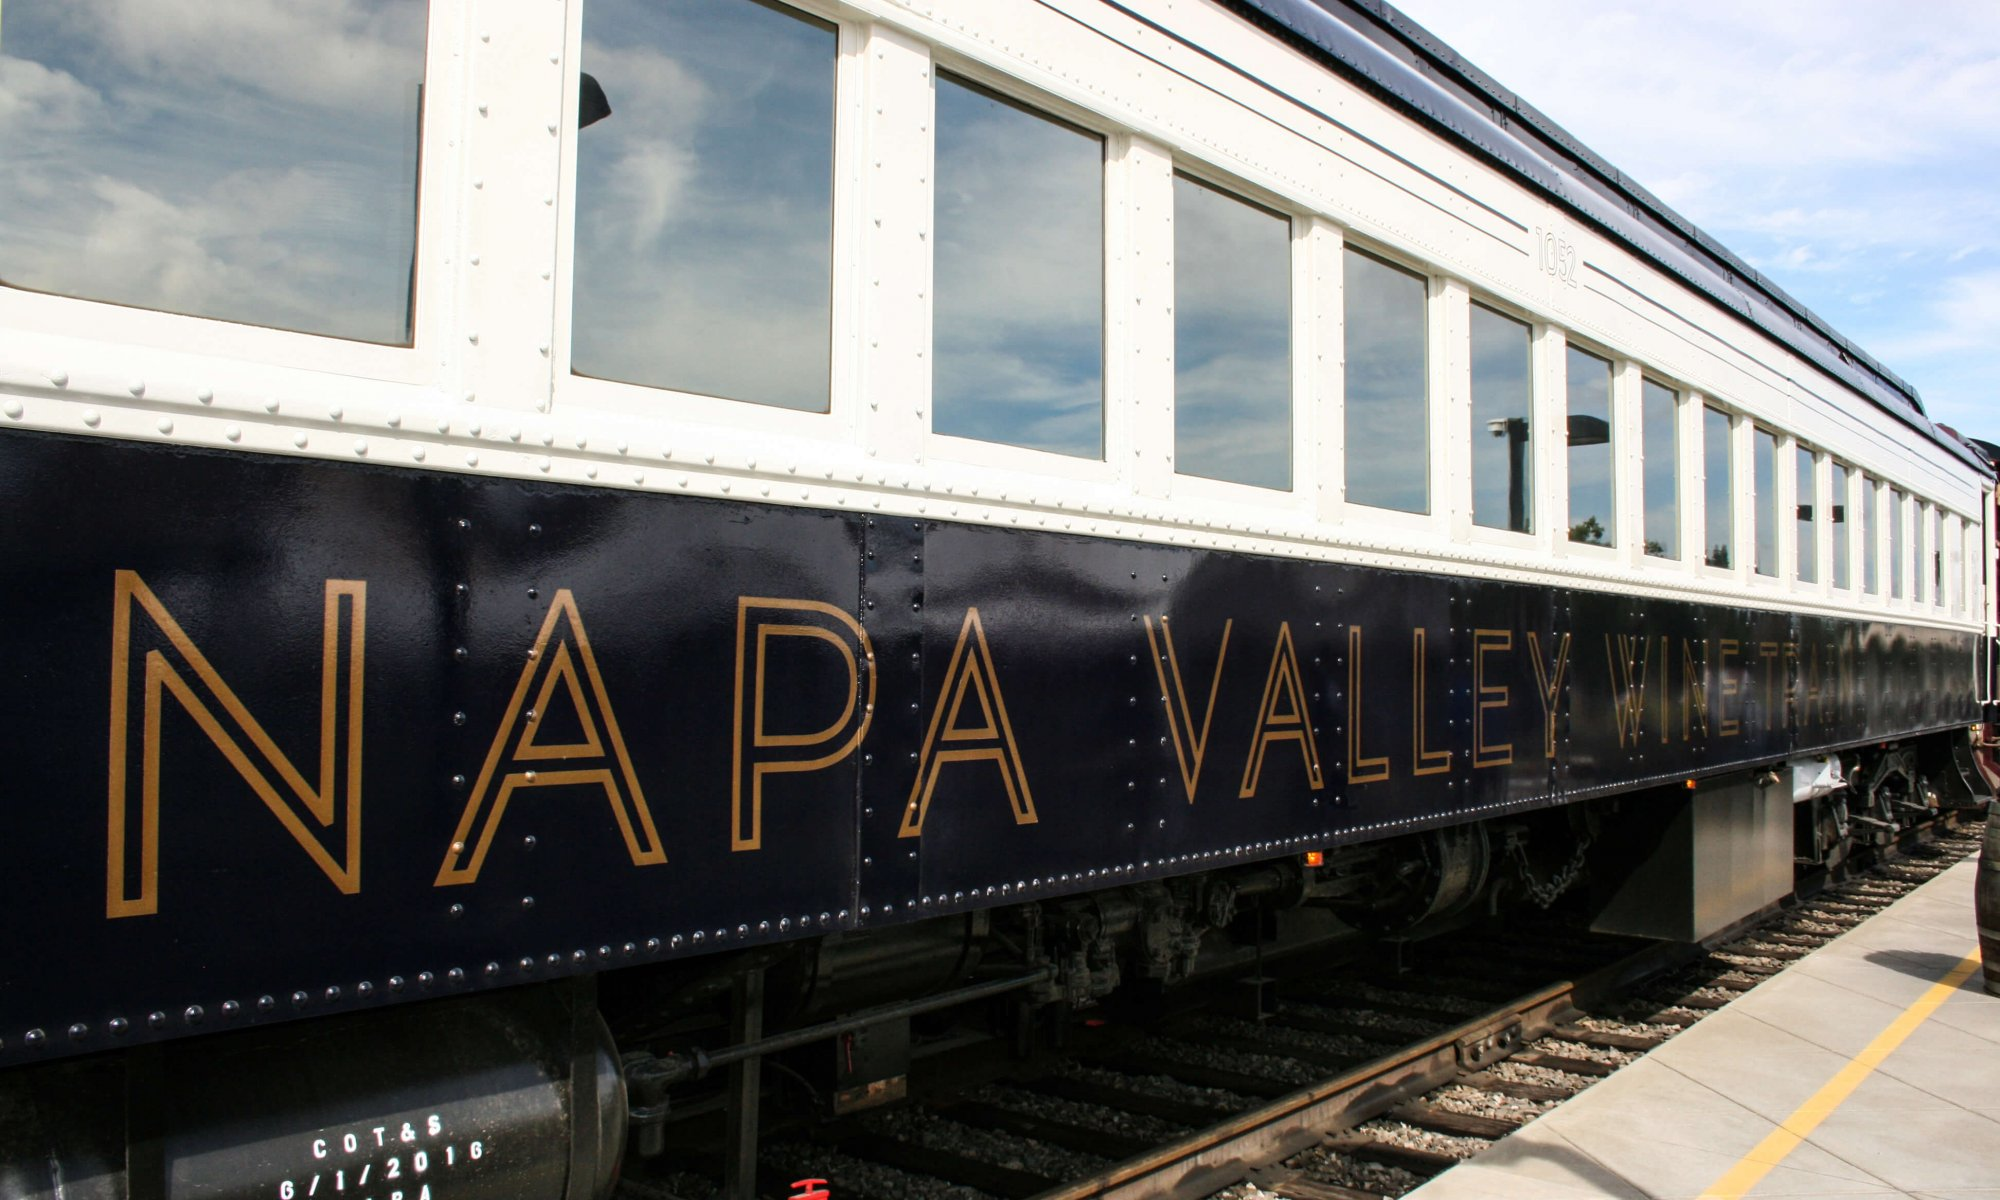 exterior close-up shot of Napa Valley Wine Train with logo on the side